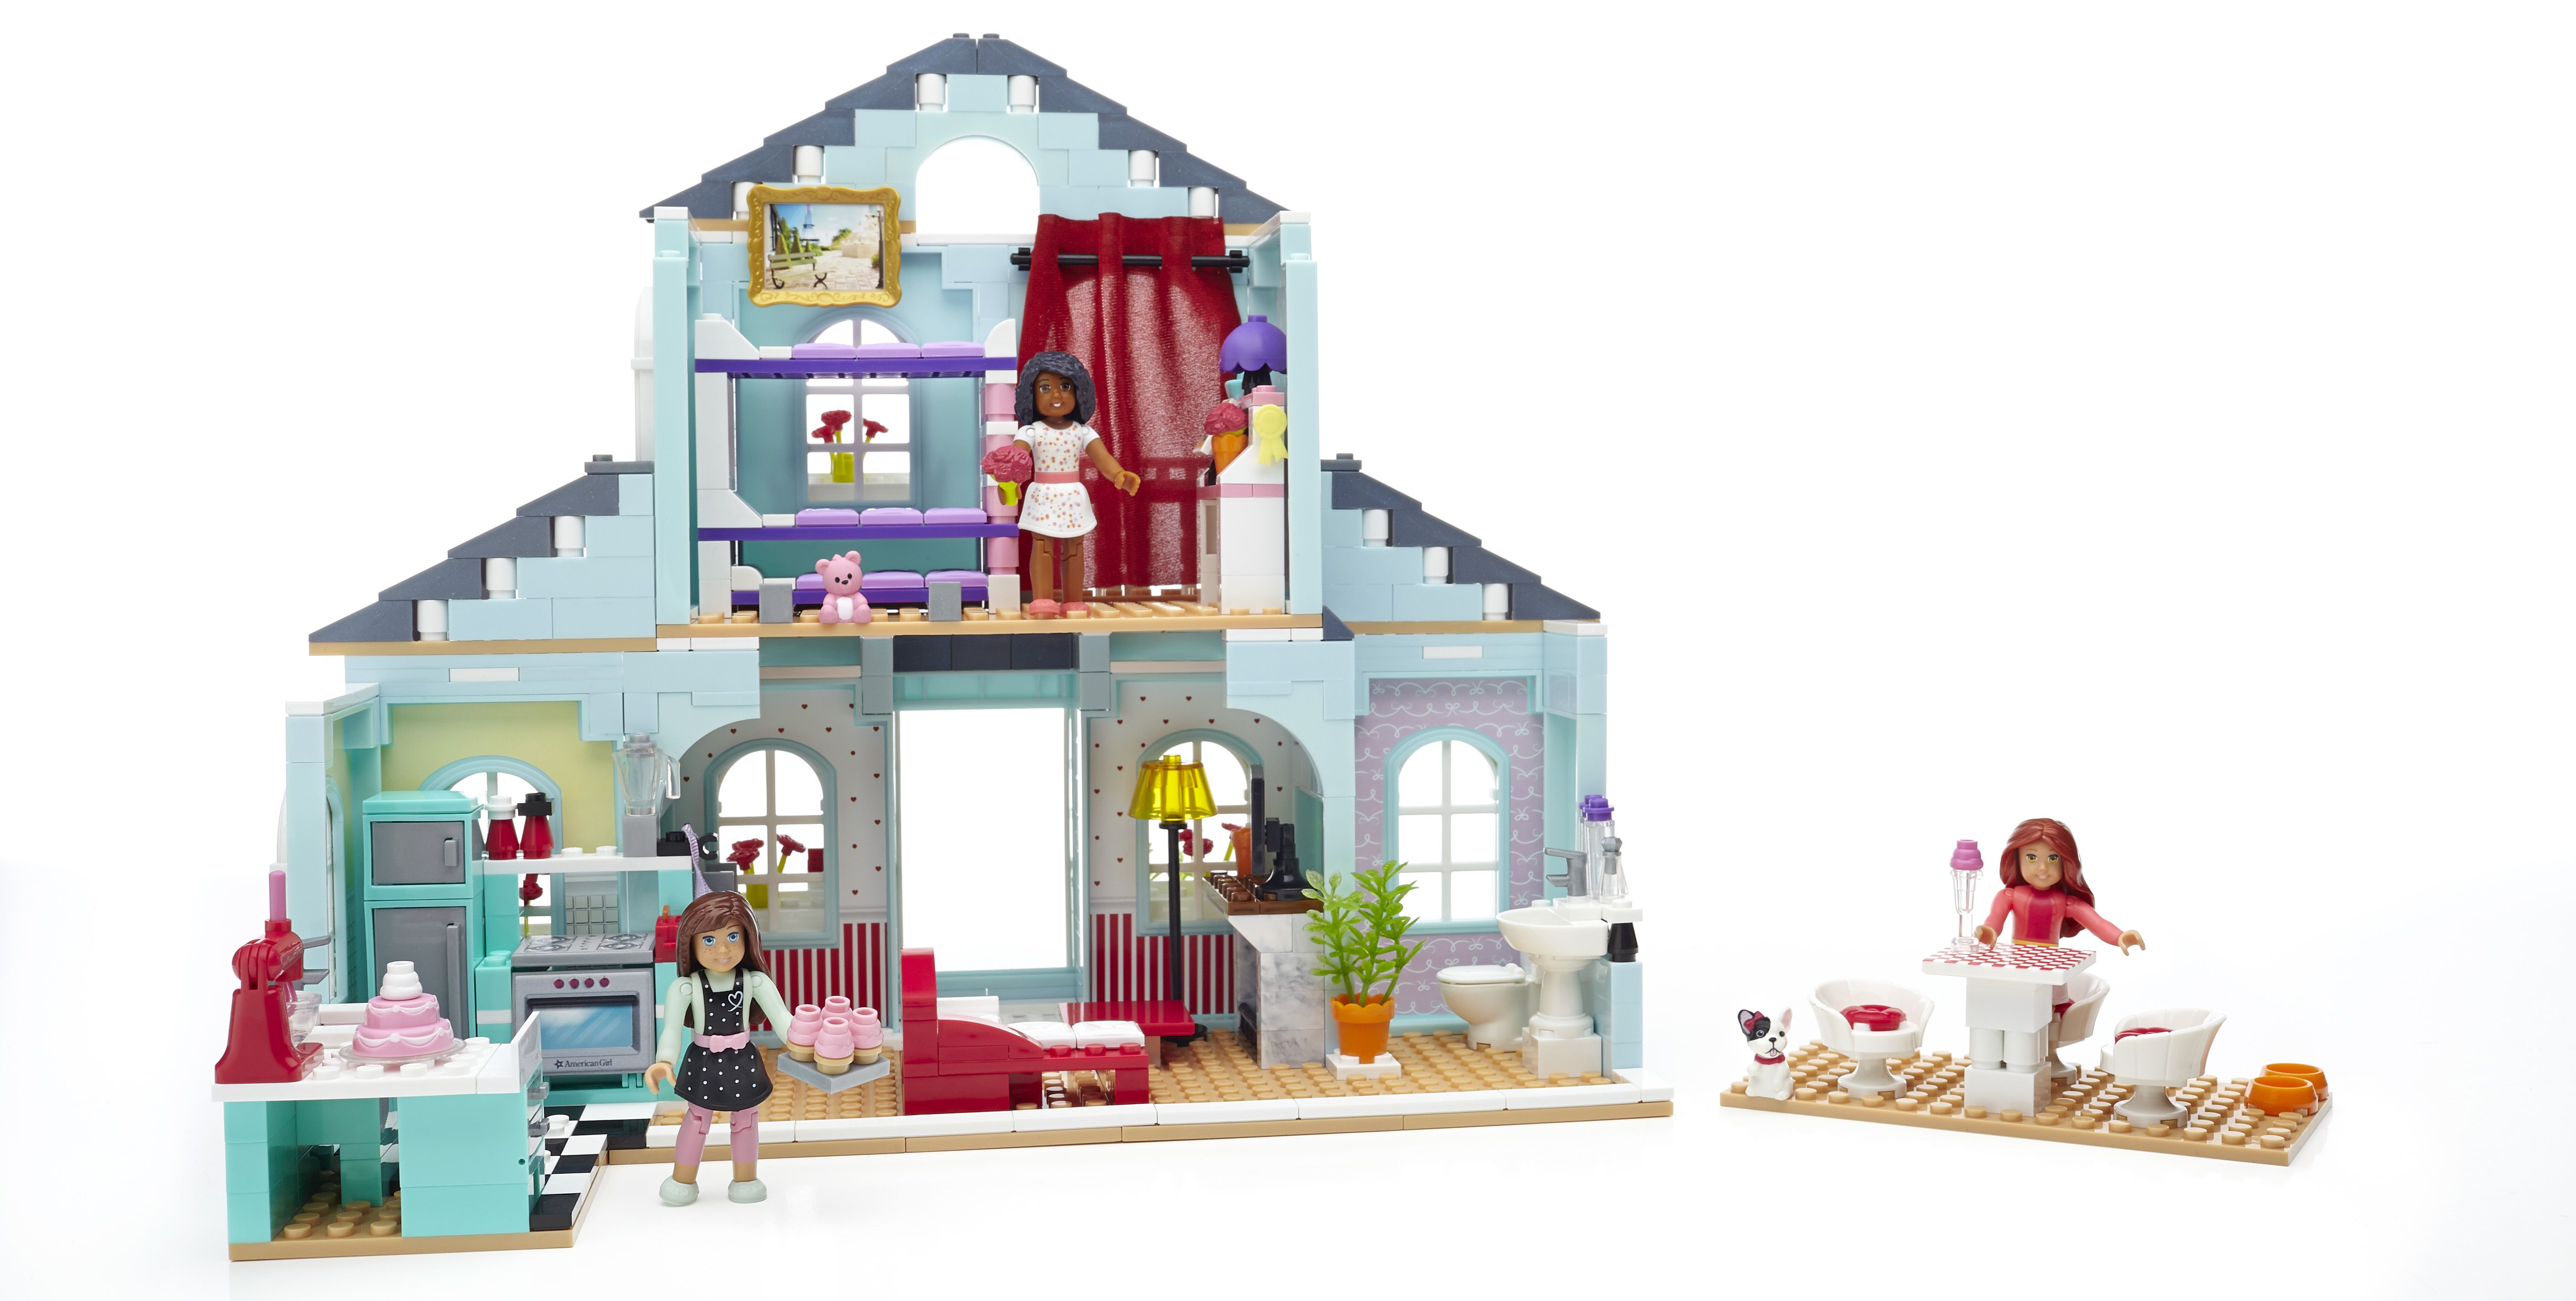 The 8 Best American Girl Construction Toys to Buy in 2018